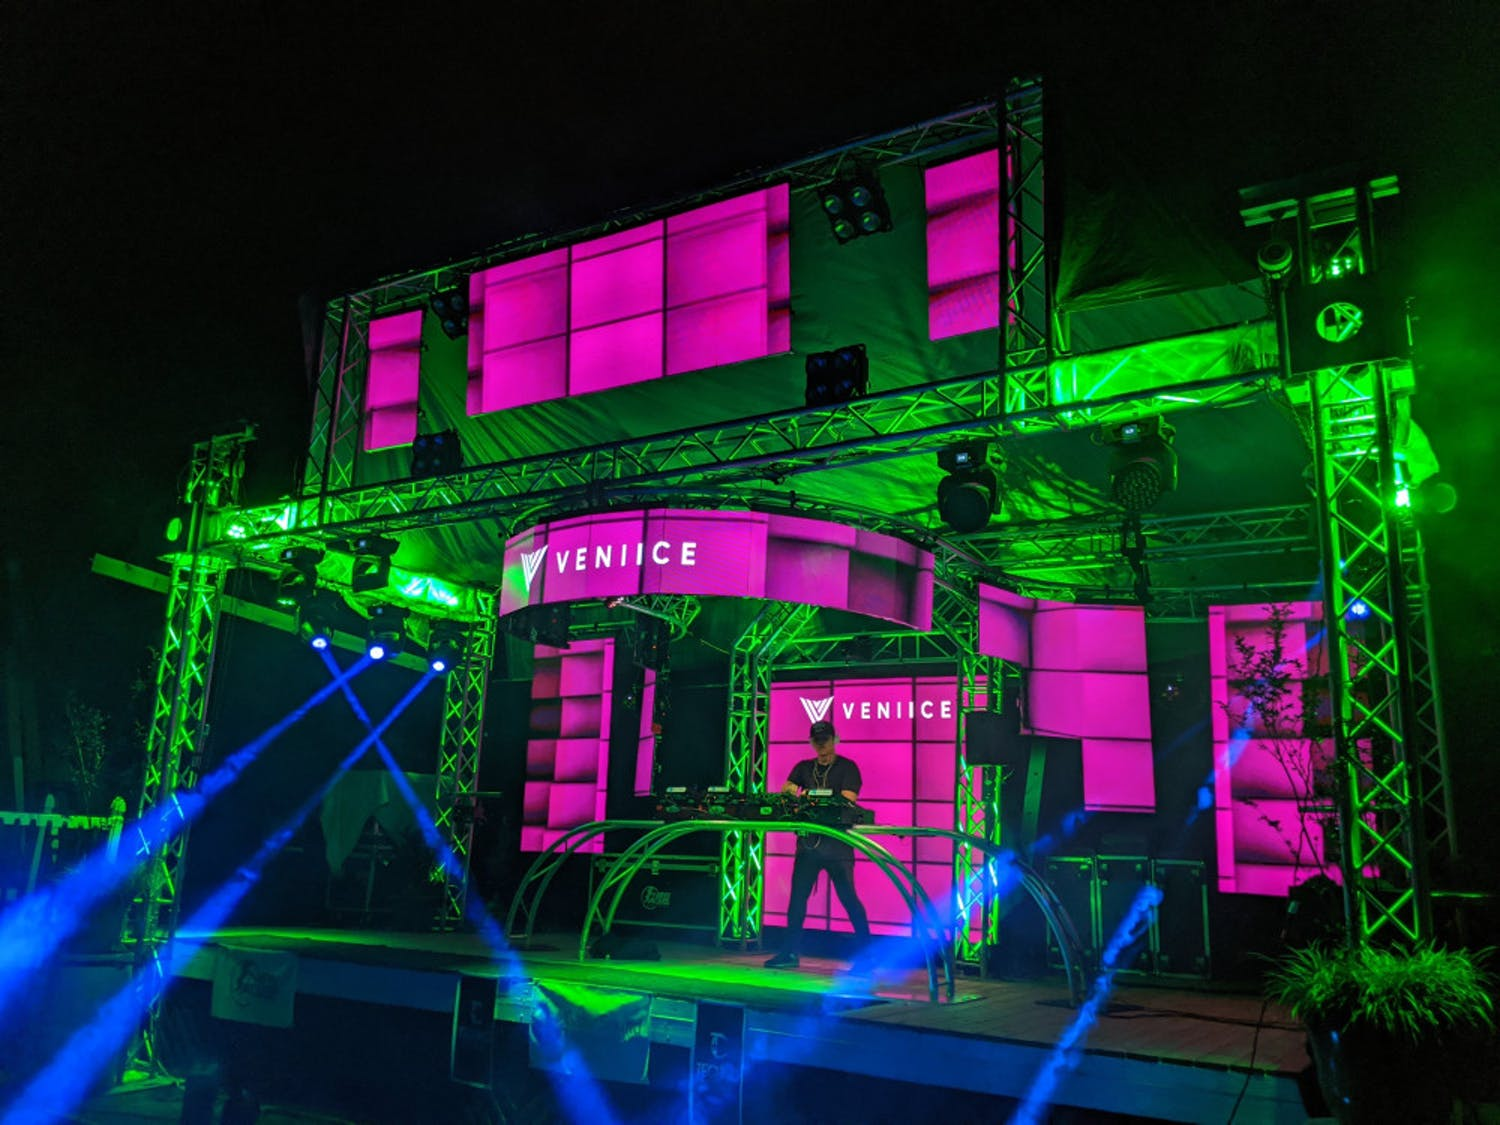 Palmieri, 34-year-old Gainesville resident and owner of Gator Sound and Lighting has built a fully functioning stage, complete with lasers and lights, in his backyard.